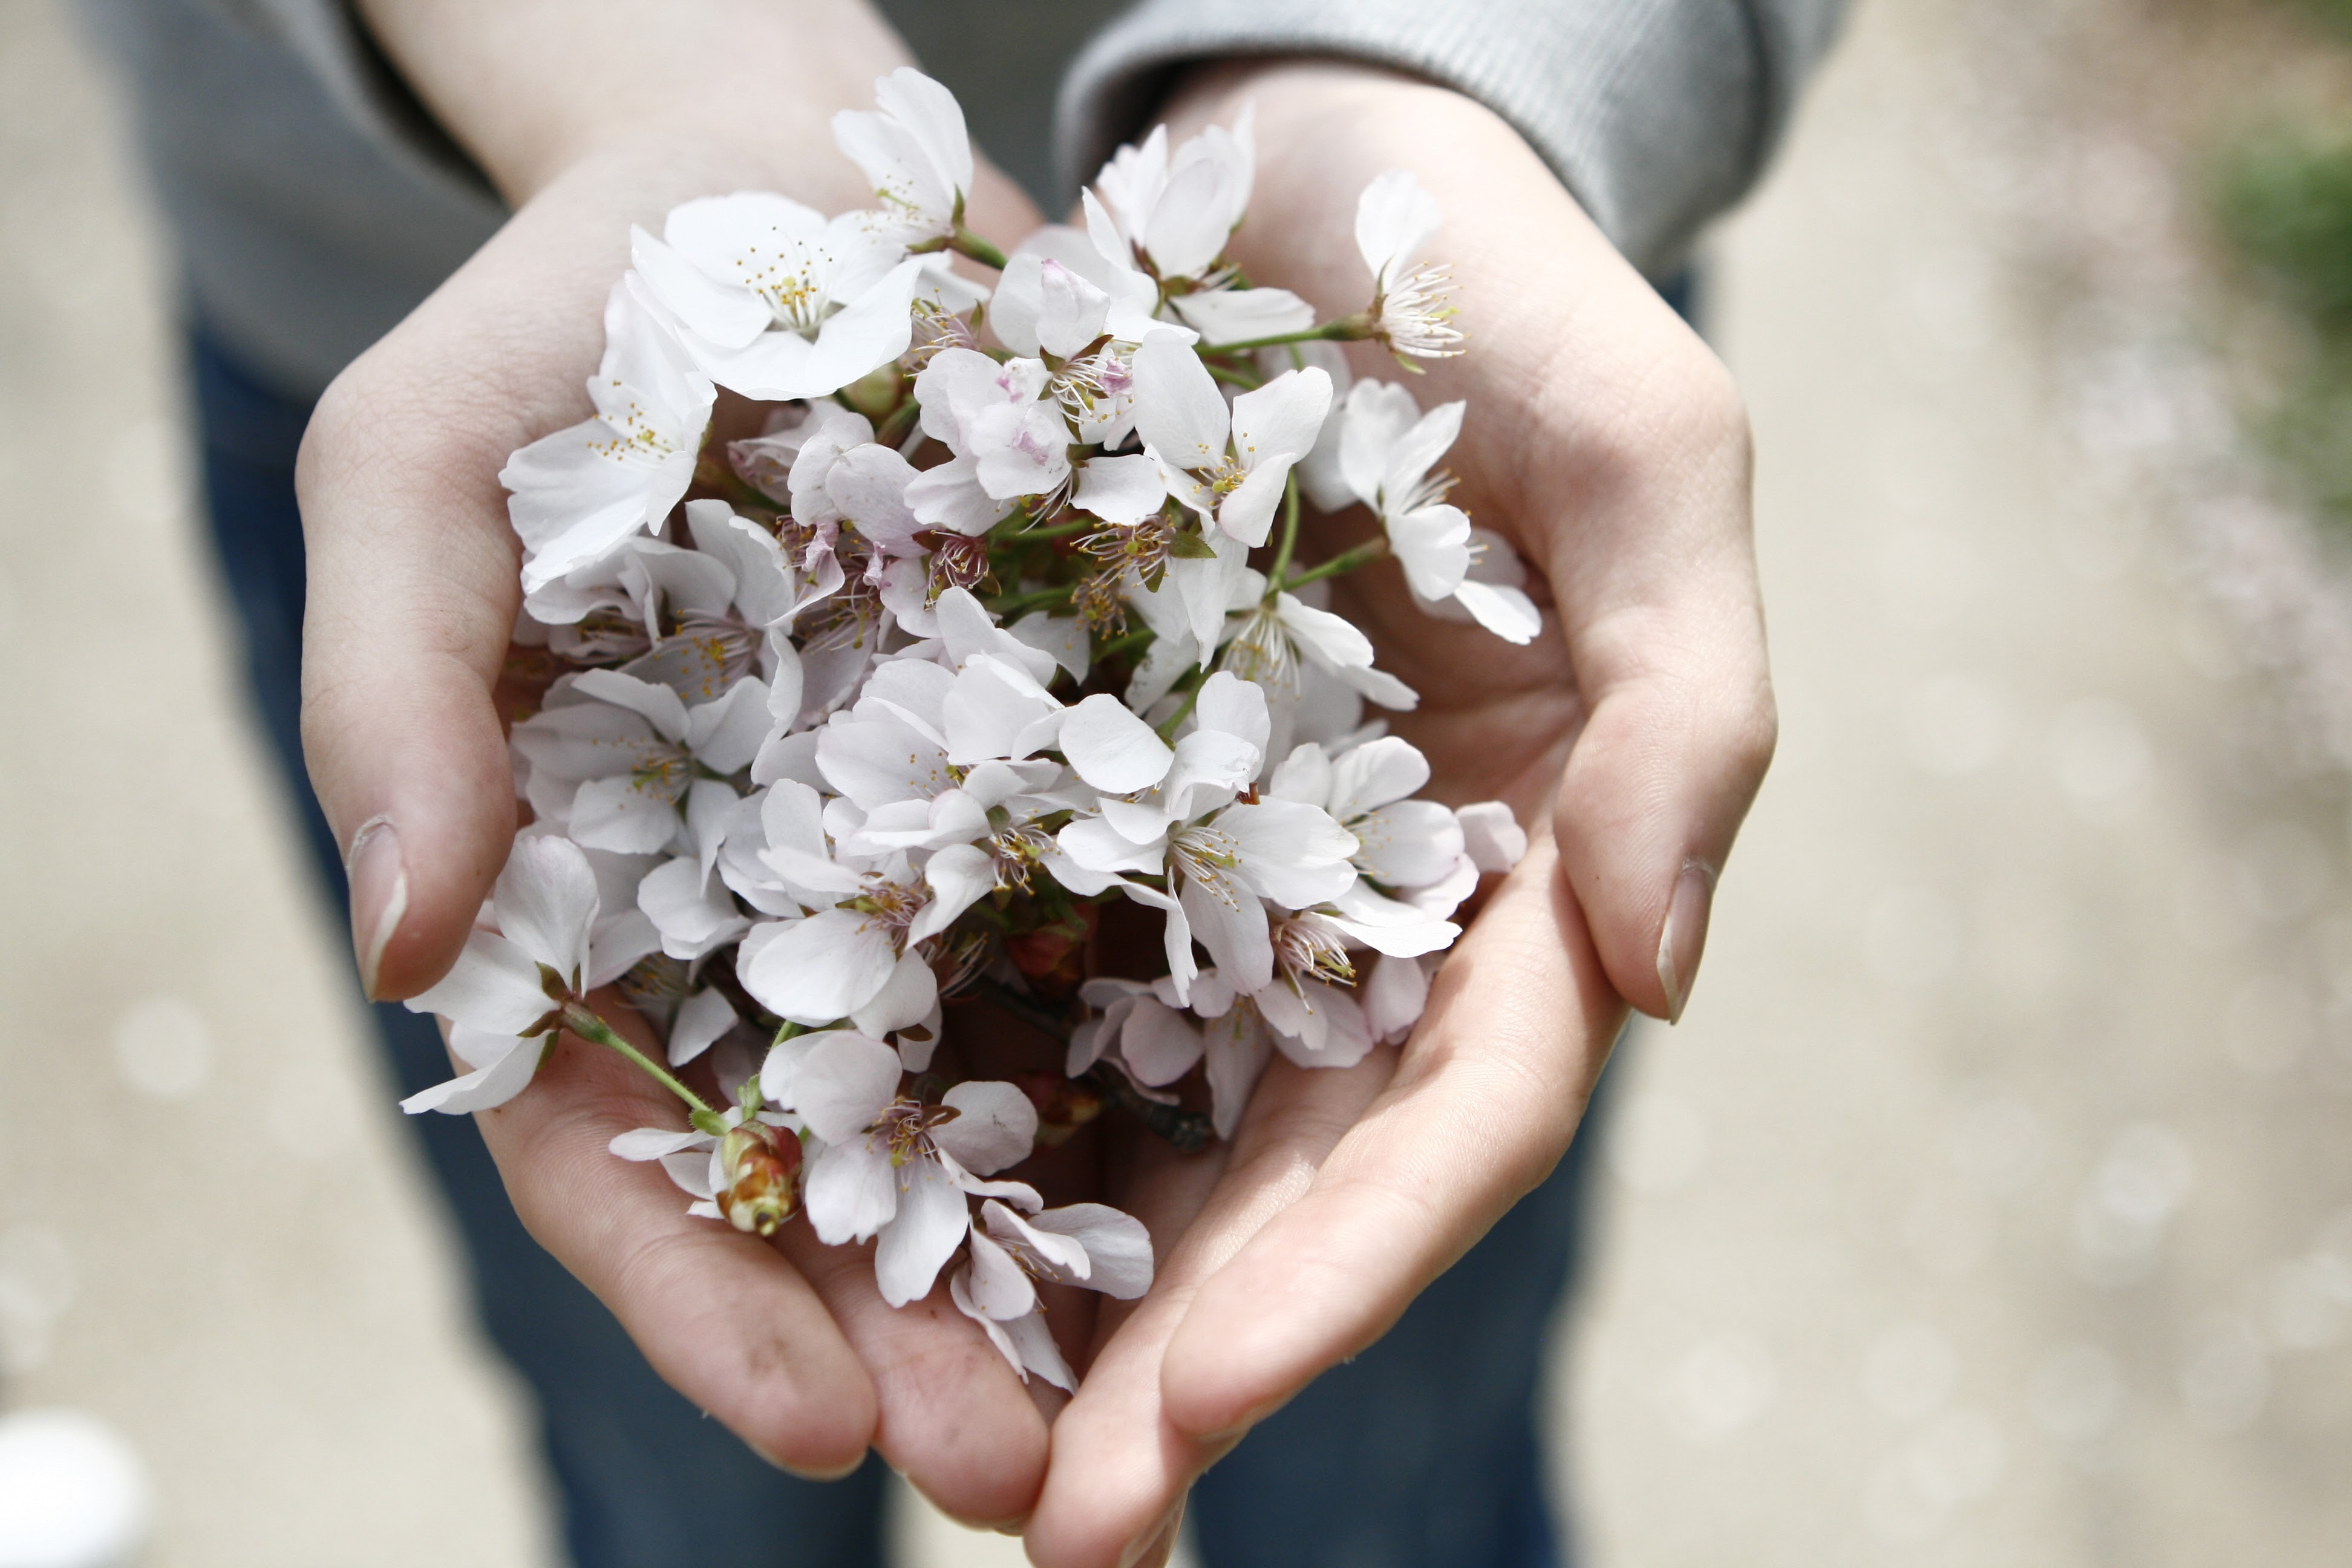 selective focus photography of person holding white clustered flowers